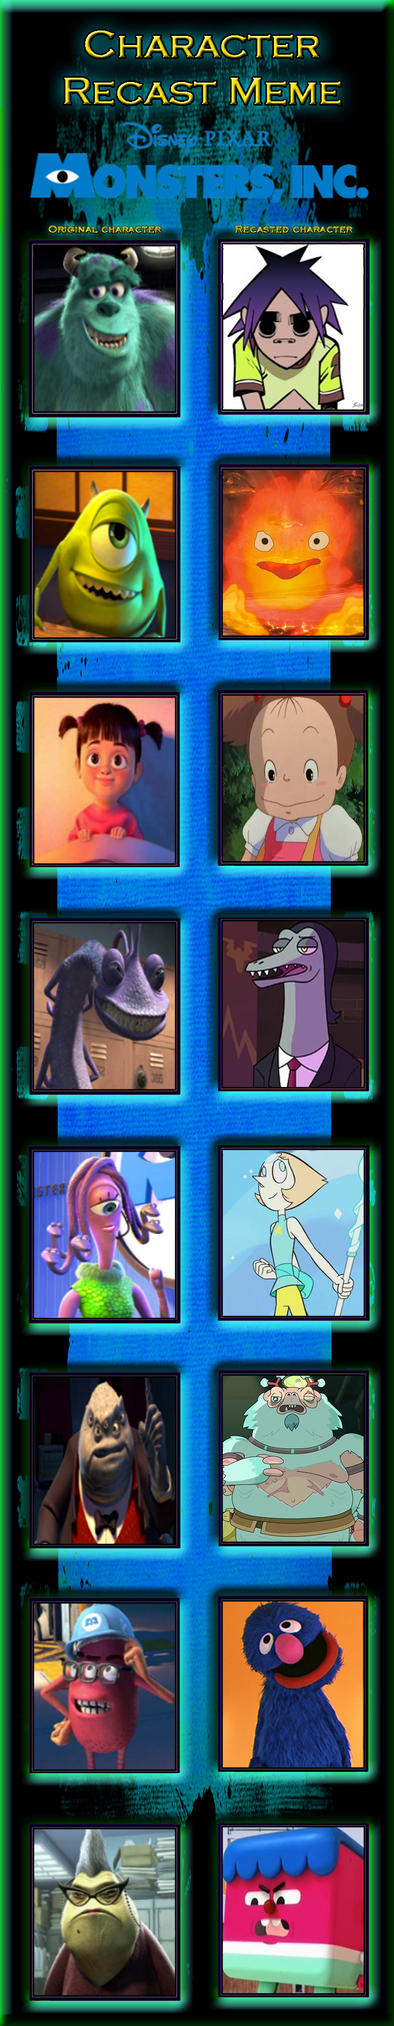 Monsters Inc recast by thearist2013